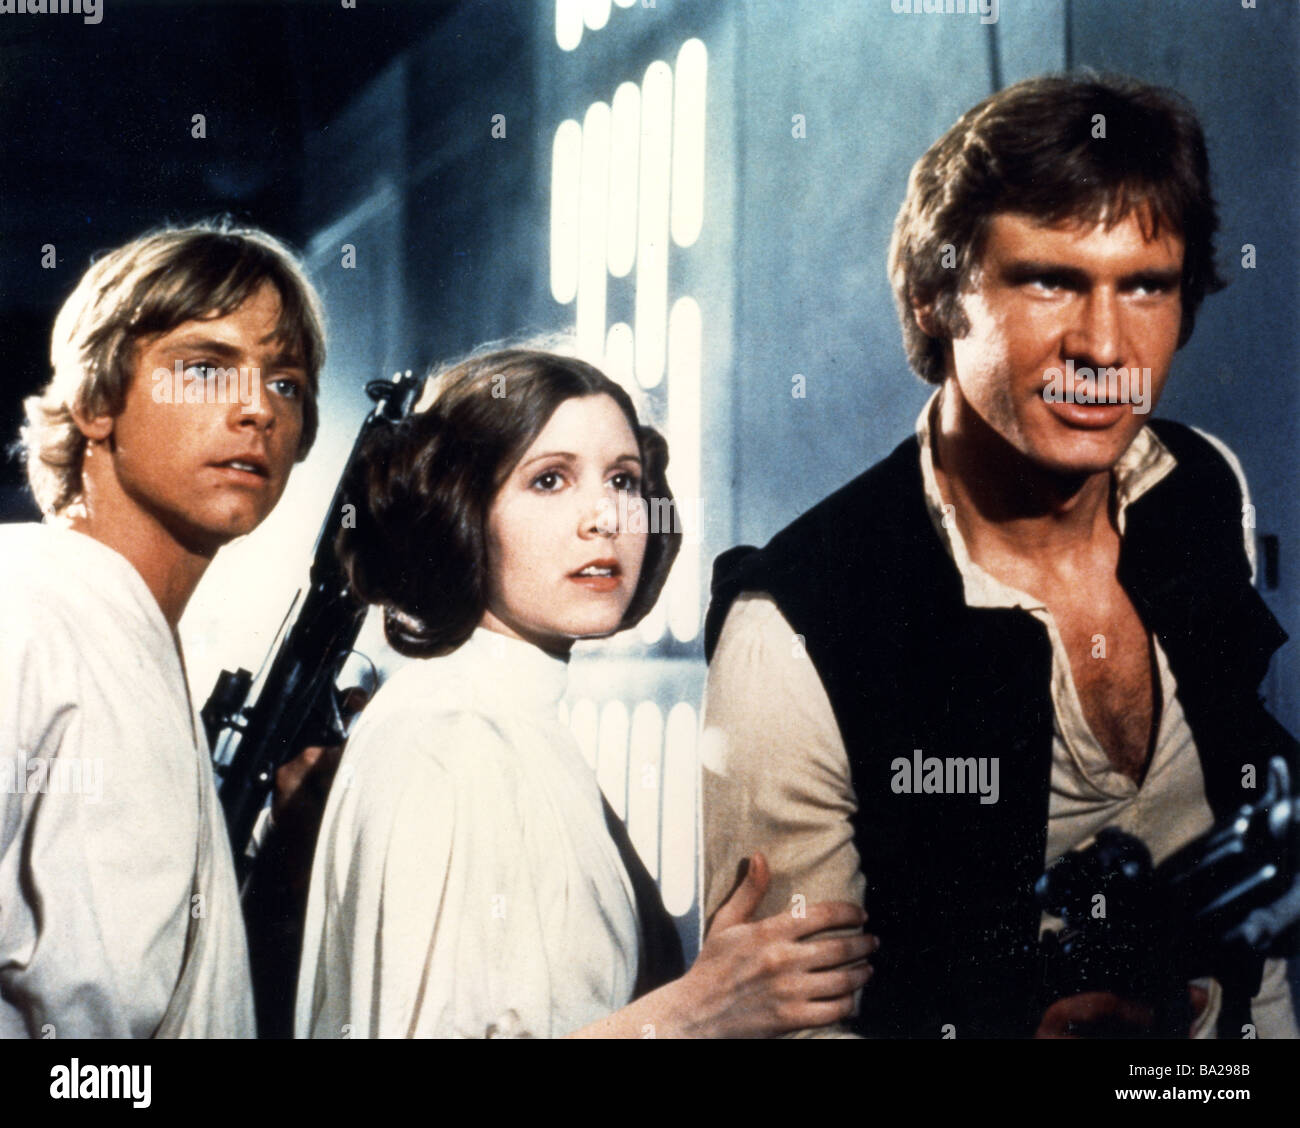 STAR WARS : EPISODE IV - A NEW HOPE 1977 TCF film with from left: Mark Hamill, Carrie Fisher and Harrison Fiord - Stock Image